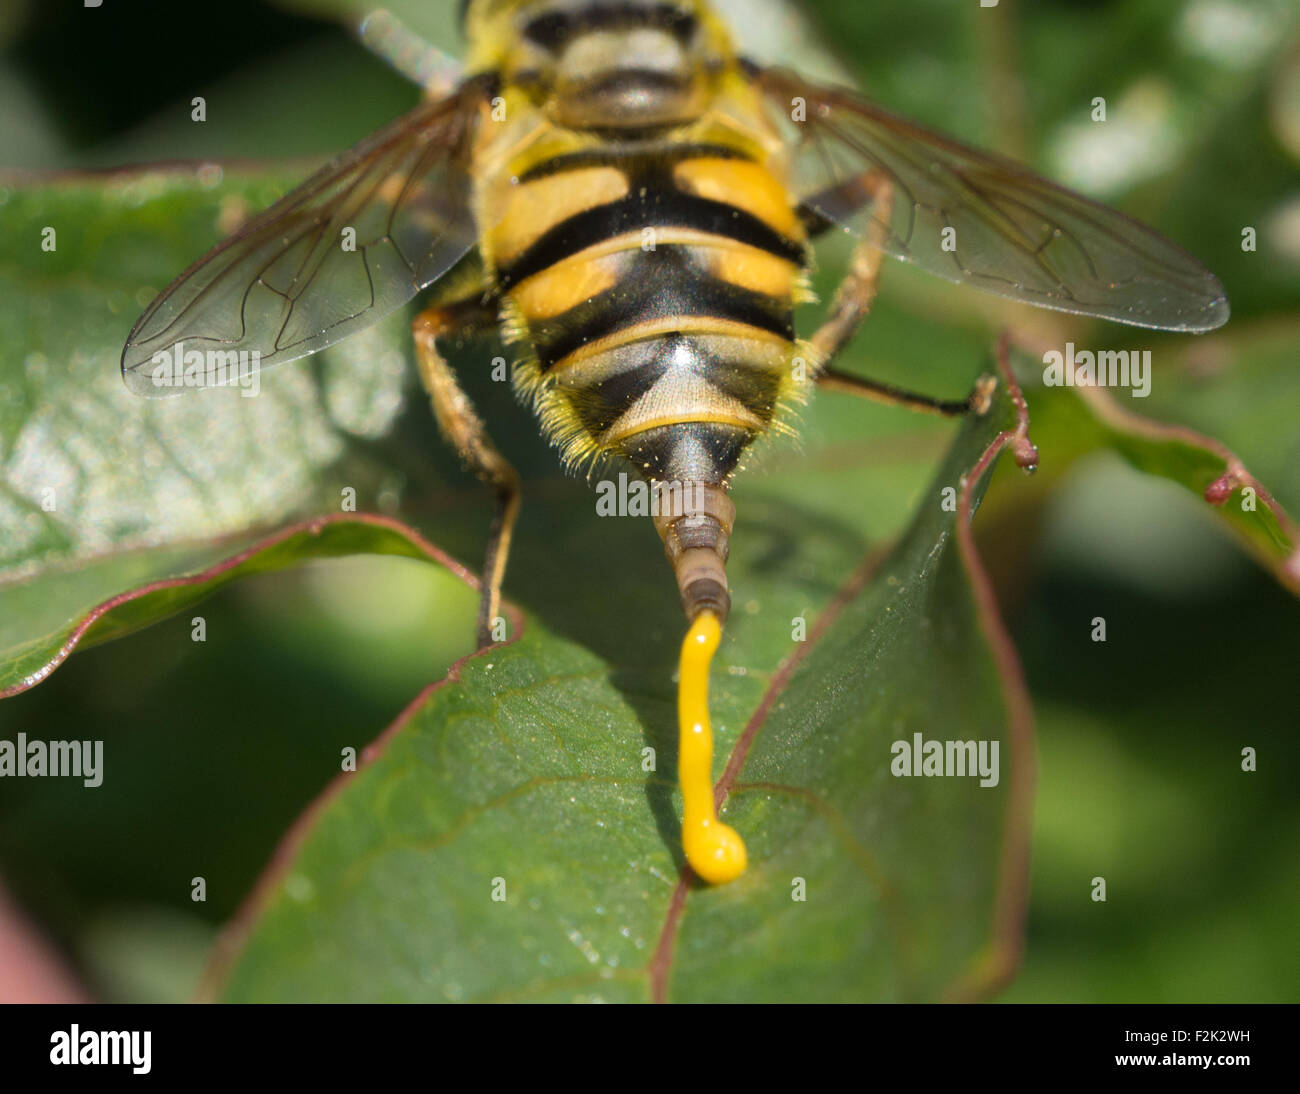 a-hoverfly-defecating-on-a-leaf-F2K2WH.jpg